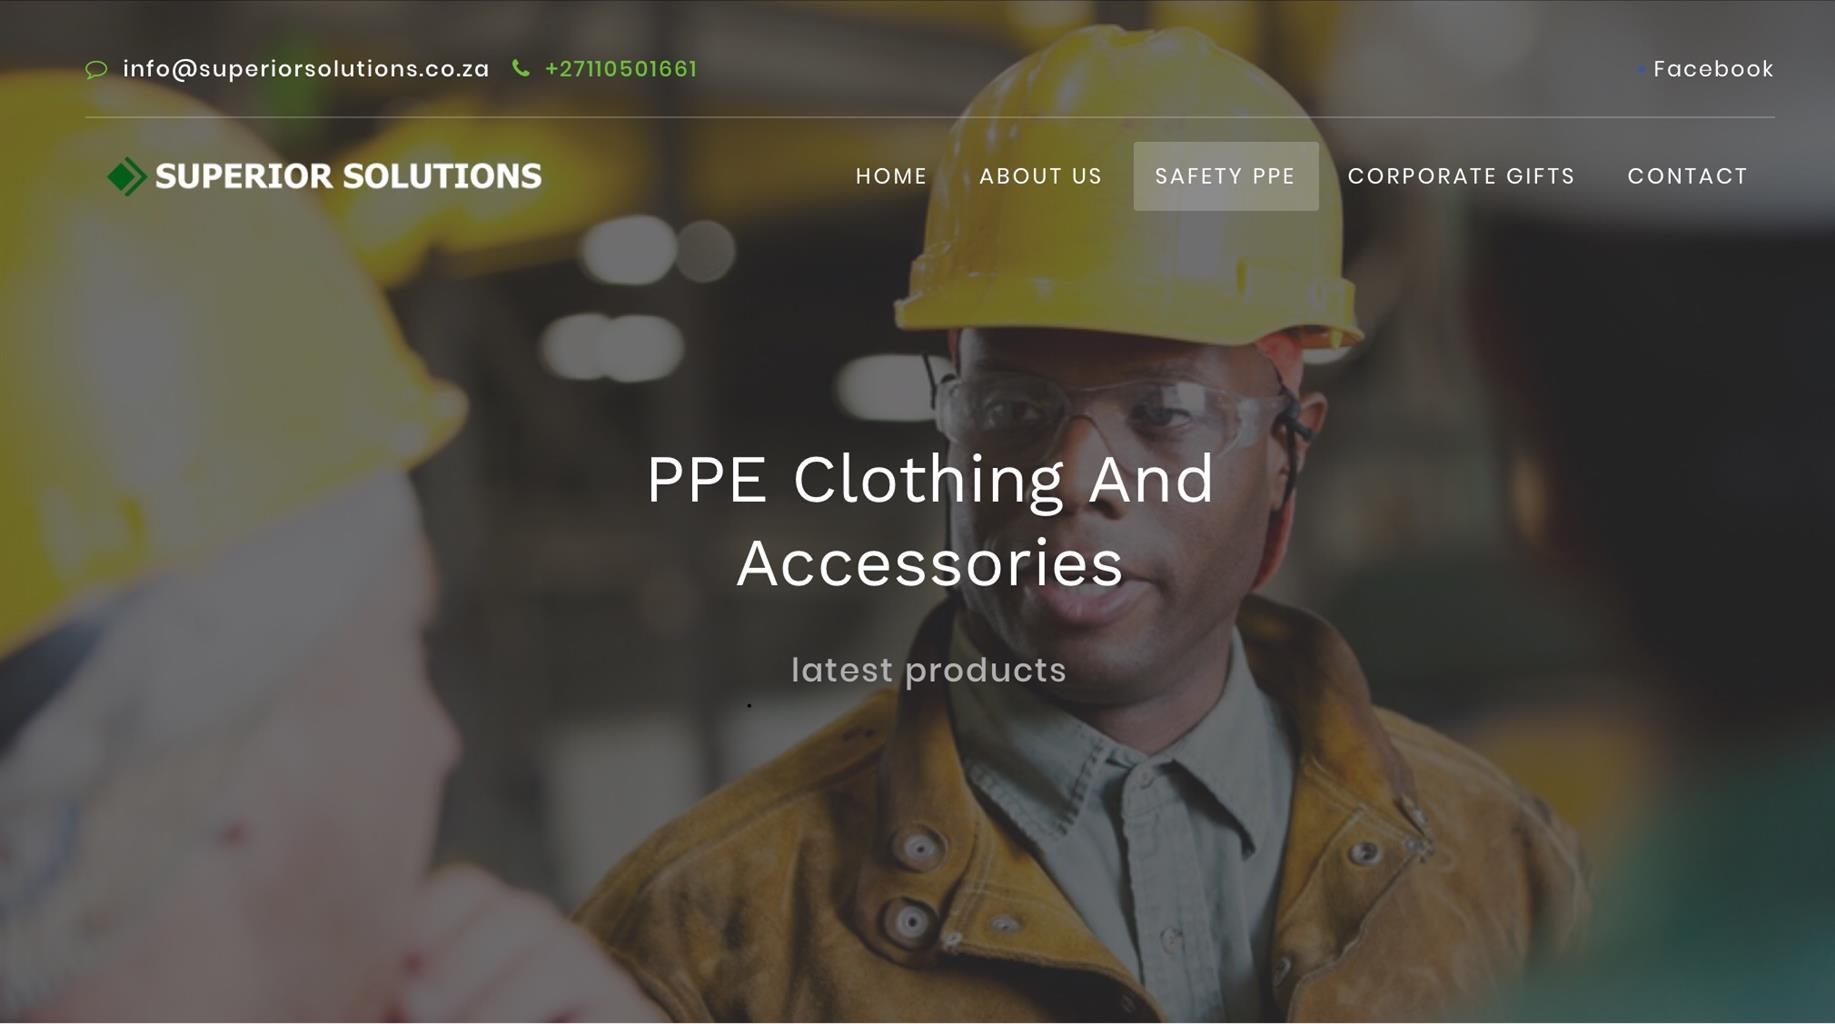 Safety PPE and Corporate/Promotional Gifts | Junk Mail